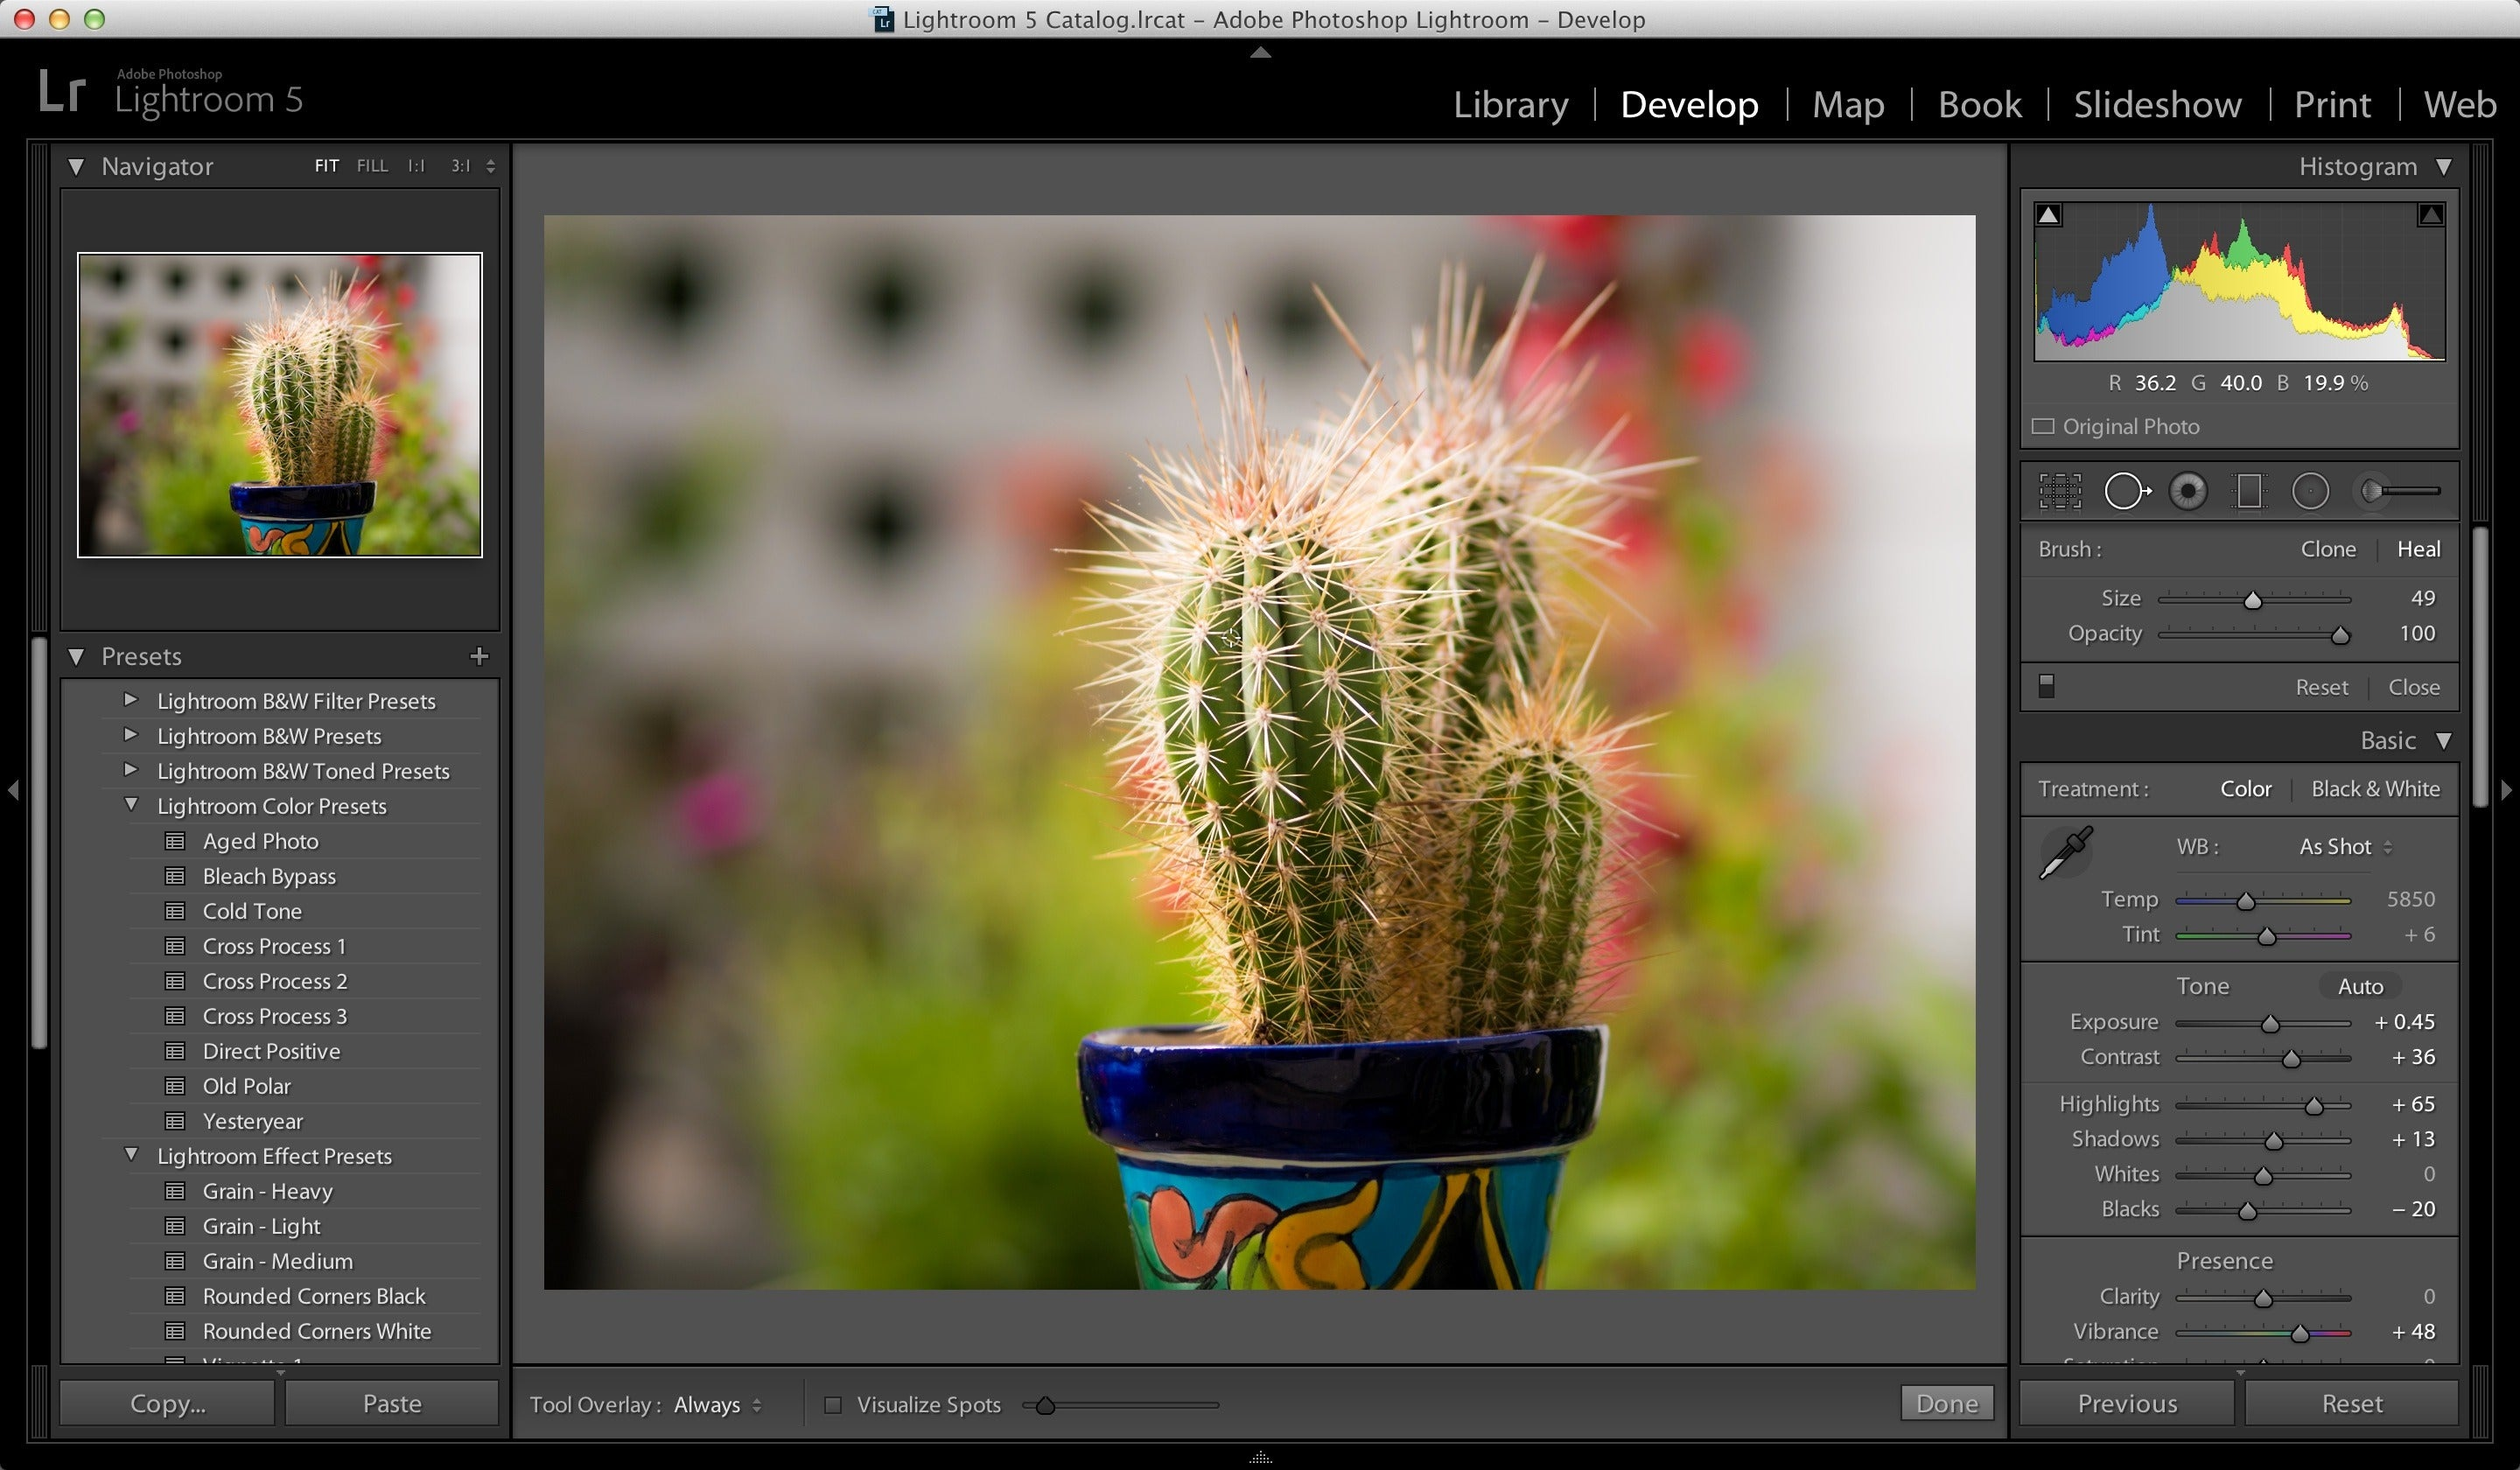 adobe photoshop lightroom 5 serial number